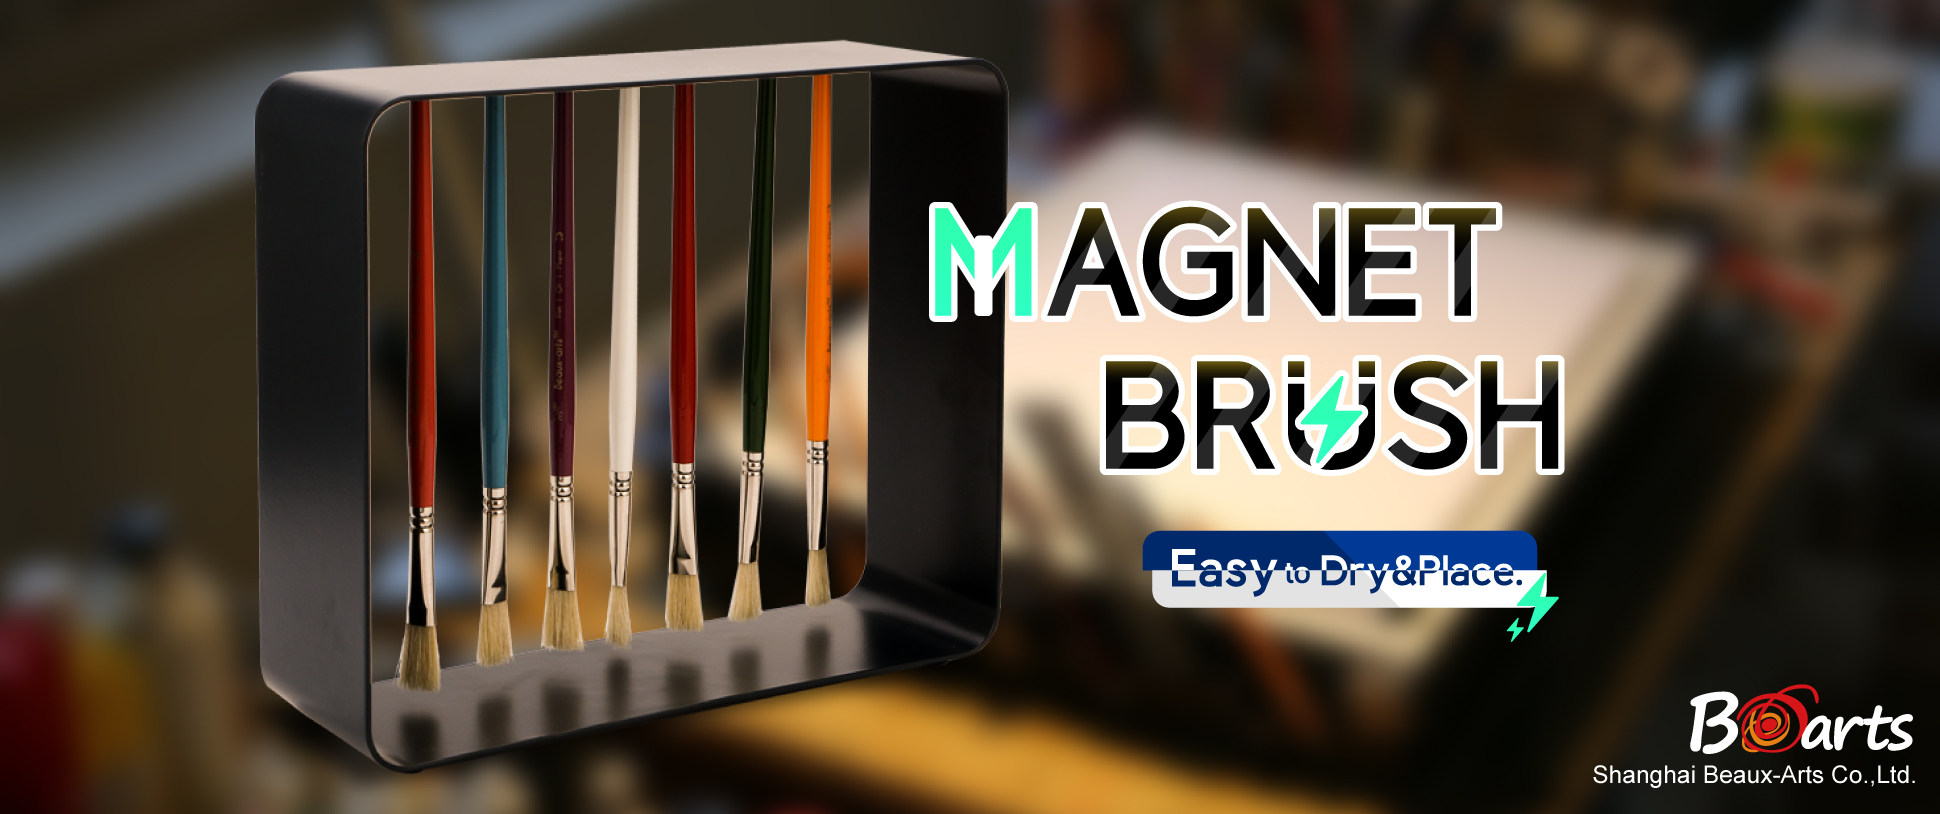 Promotion of December: new product - Magnet Brush Set